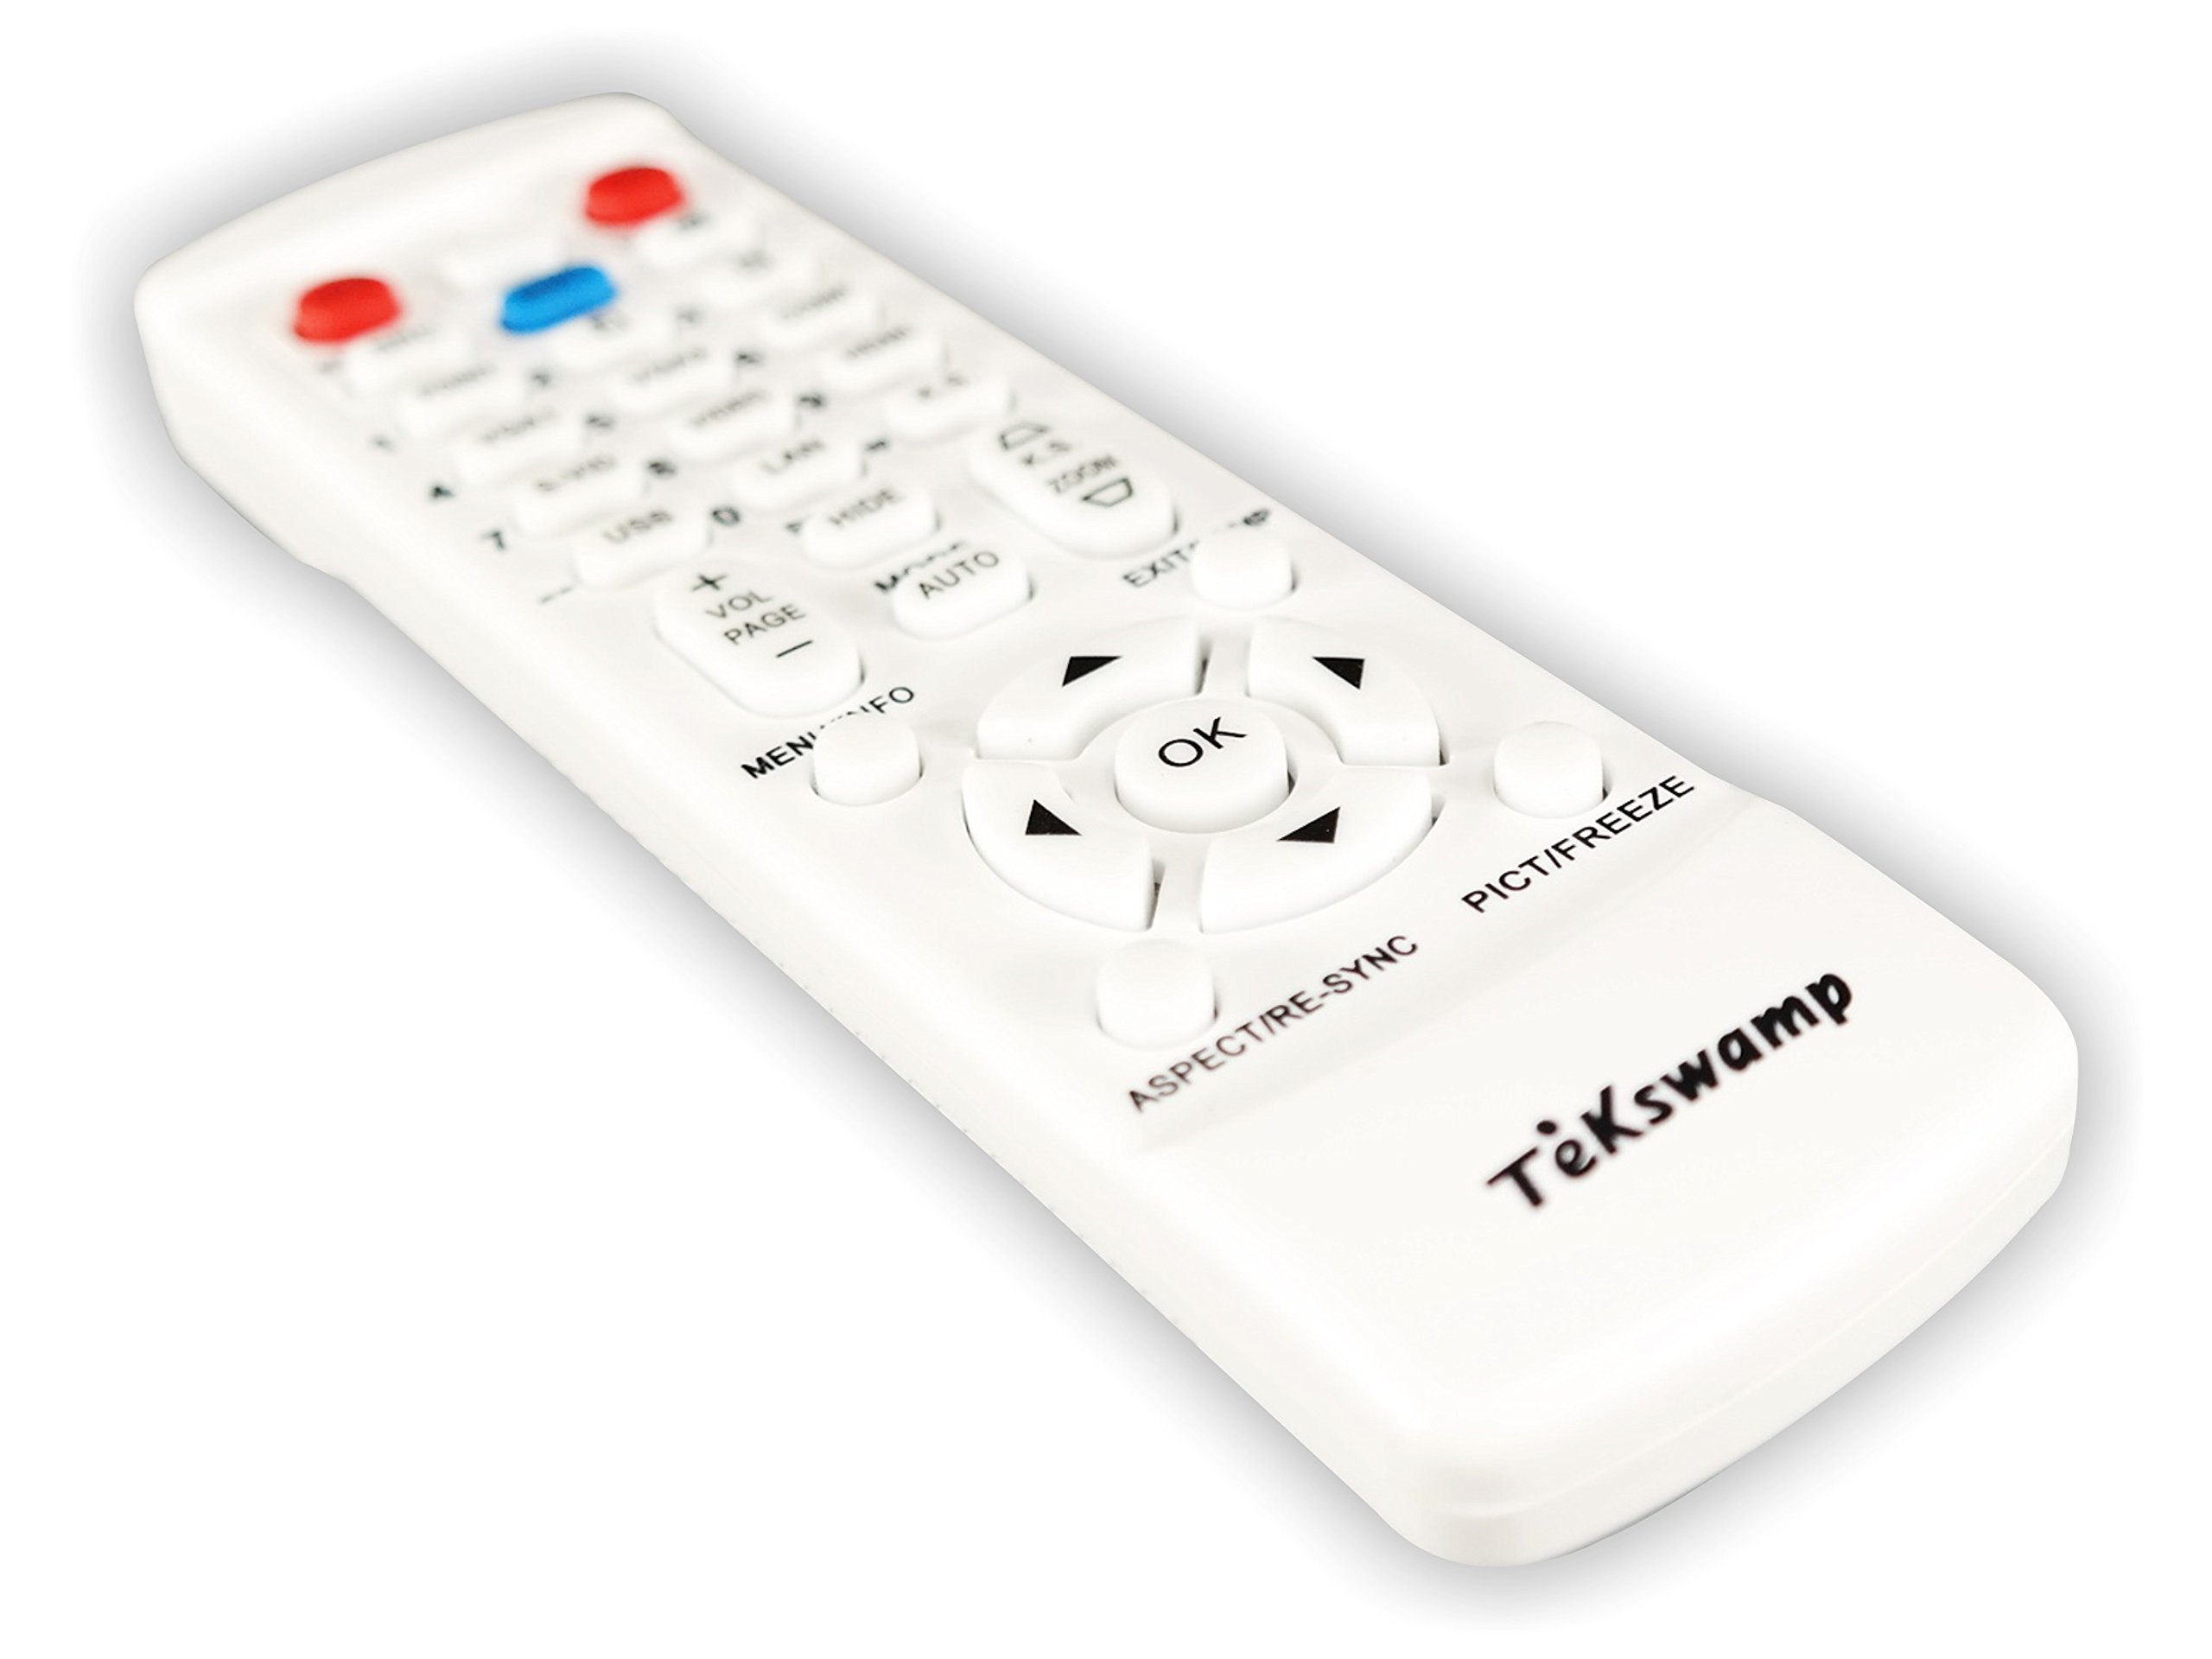 Barco RLM-W8 TeKswamp Video Projector Remote Control (White) by Tekswamp (Image #2)